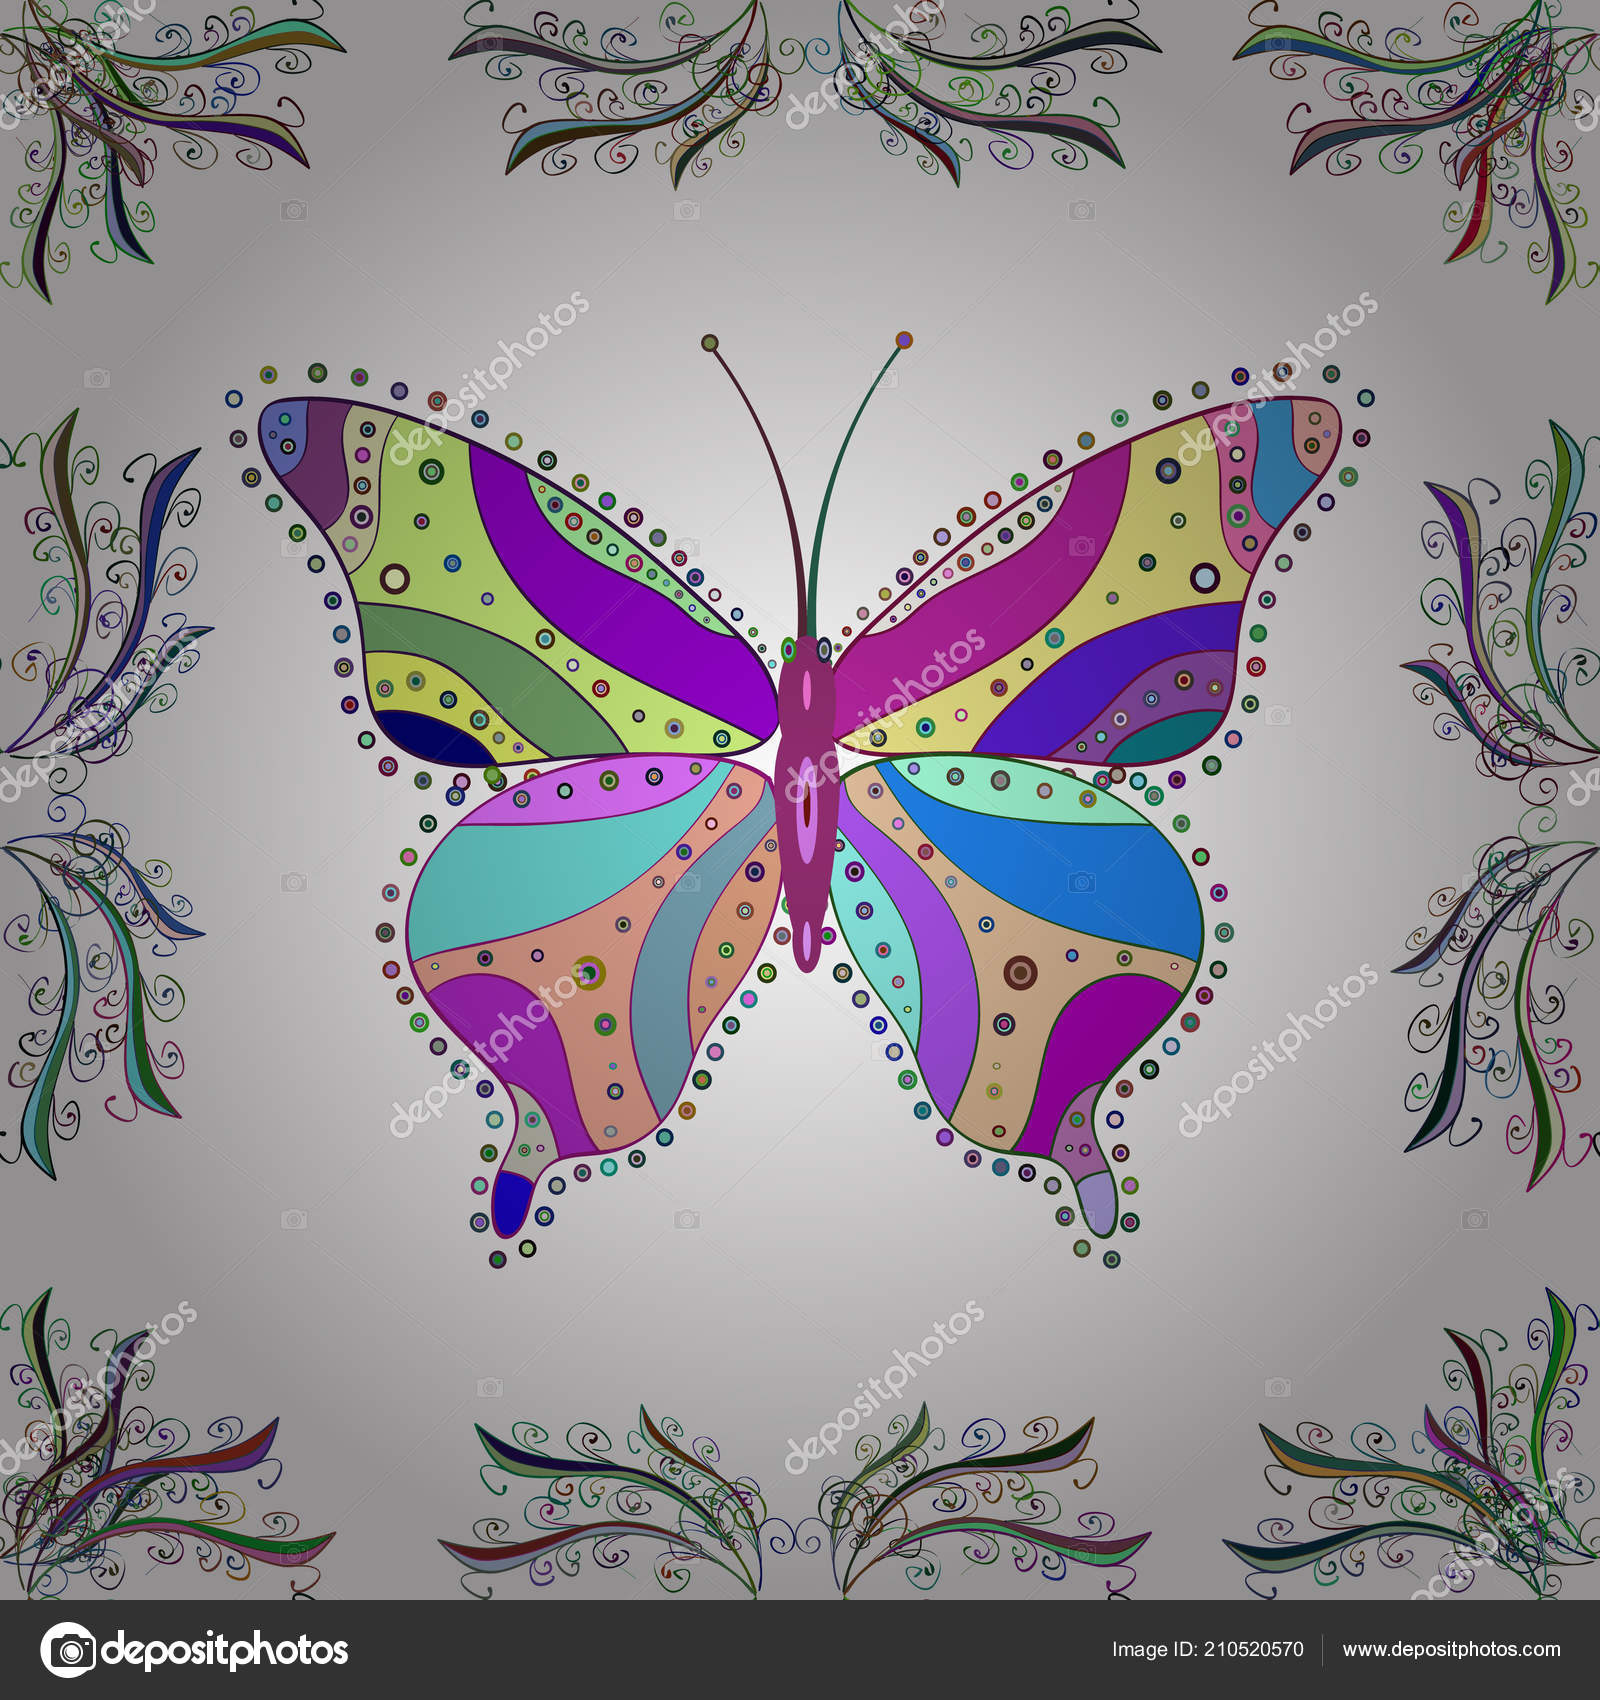 Spring Silhouettes And Shadows >> Illustration Illustration Suitable Fabric Paper Packaging Butterfly